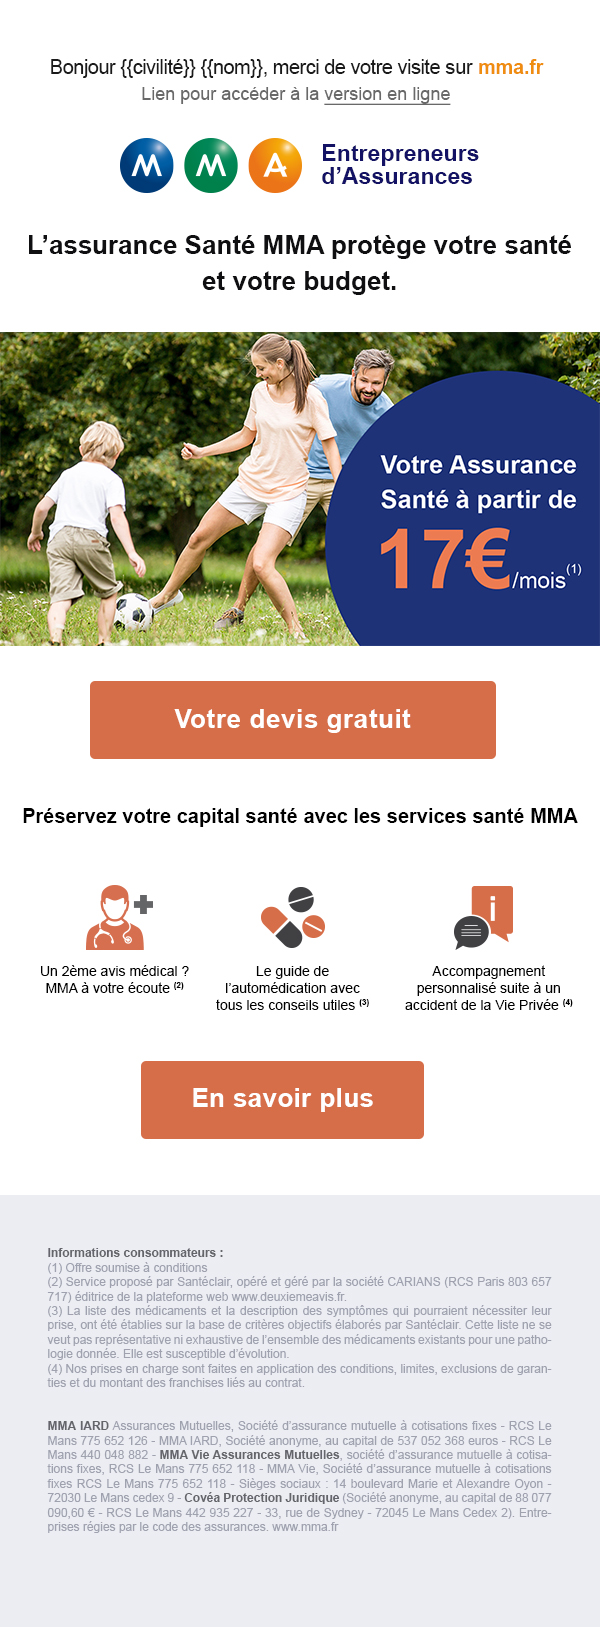 SANTE_MMA_Emailing_Campagne_Rentree